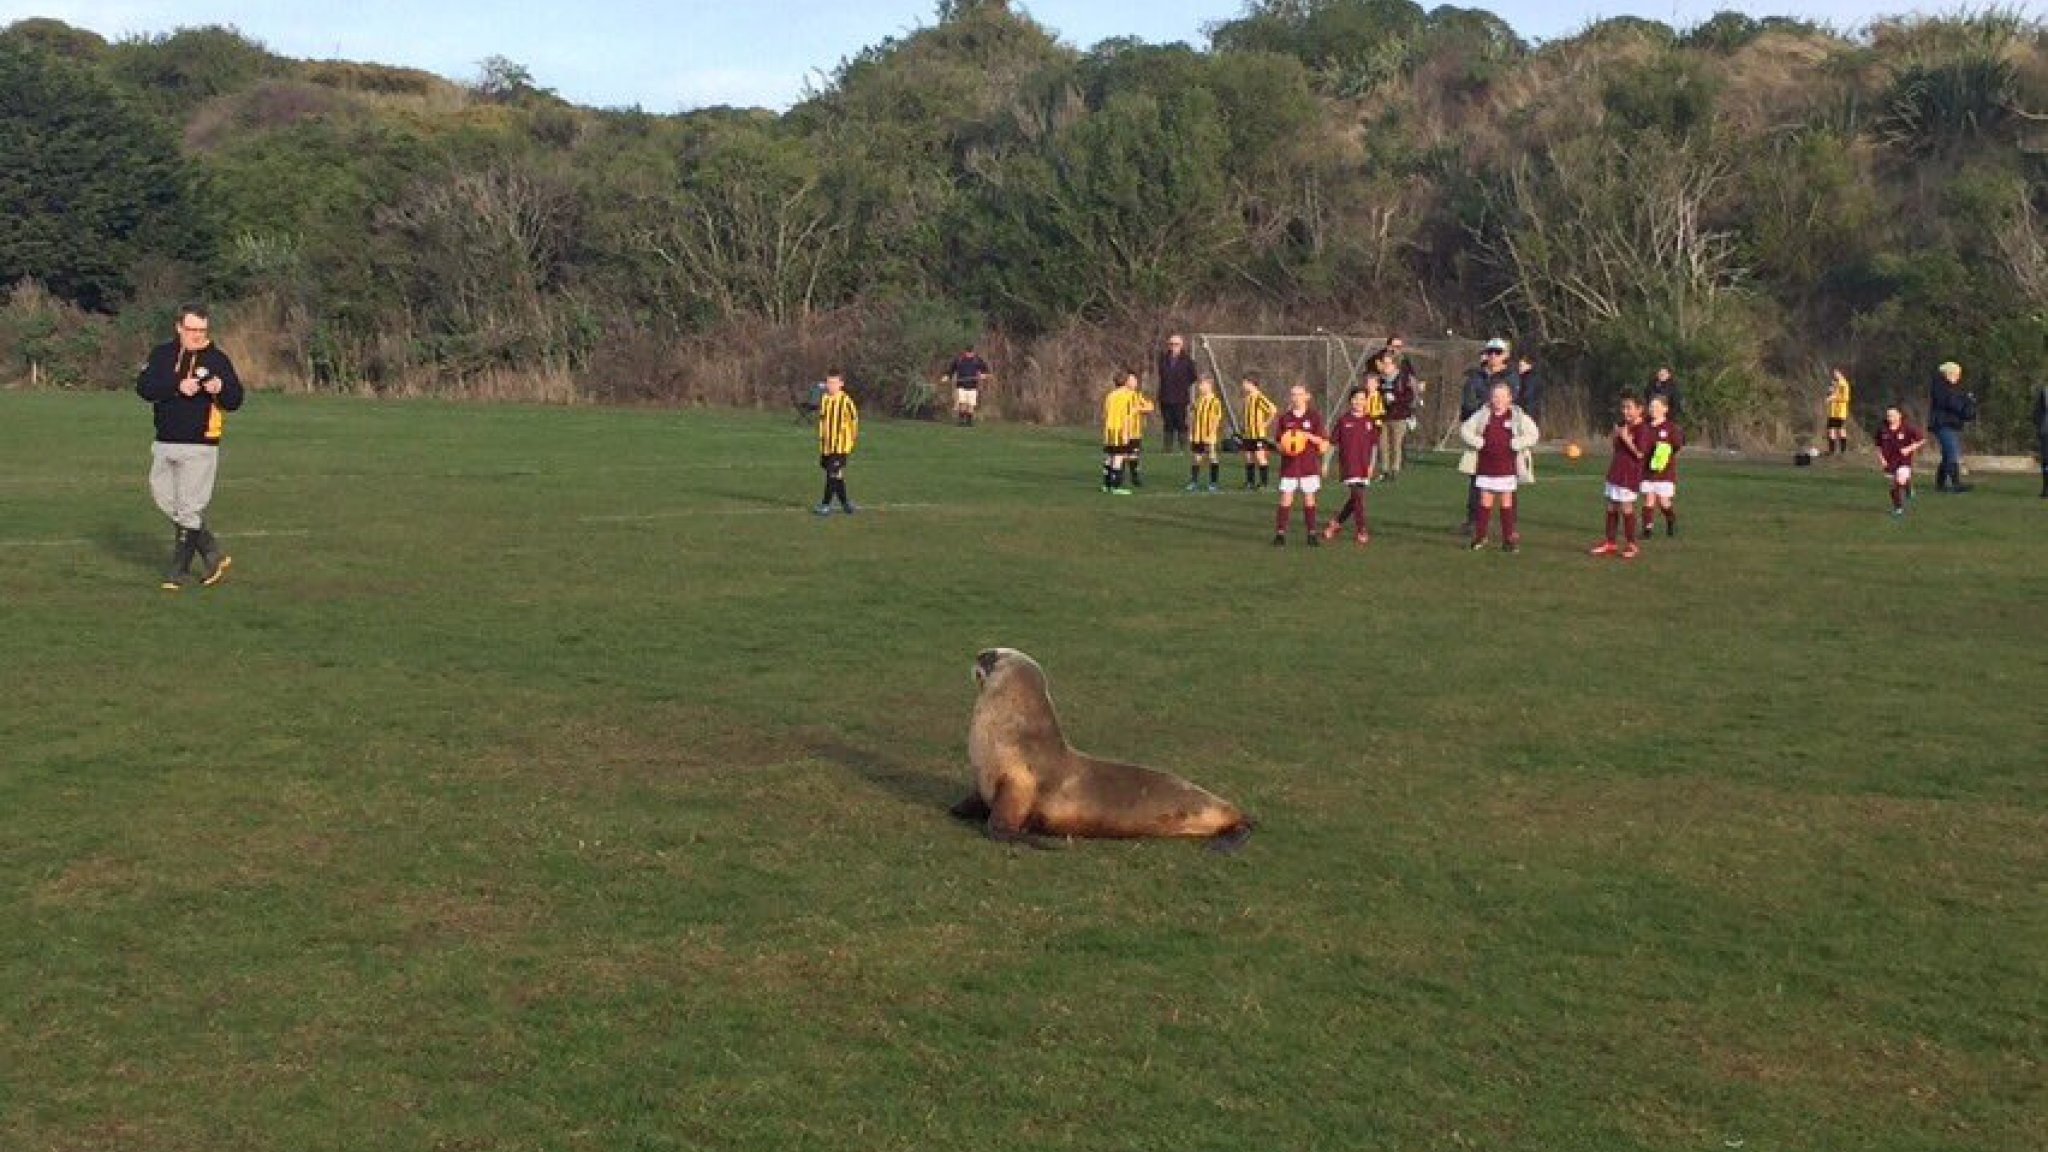 Sea Lion disrupts football match in New Zealand